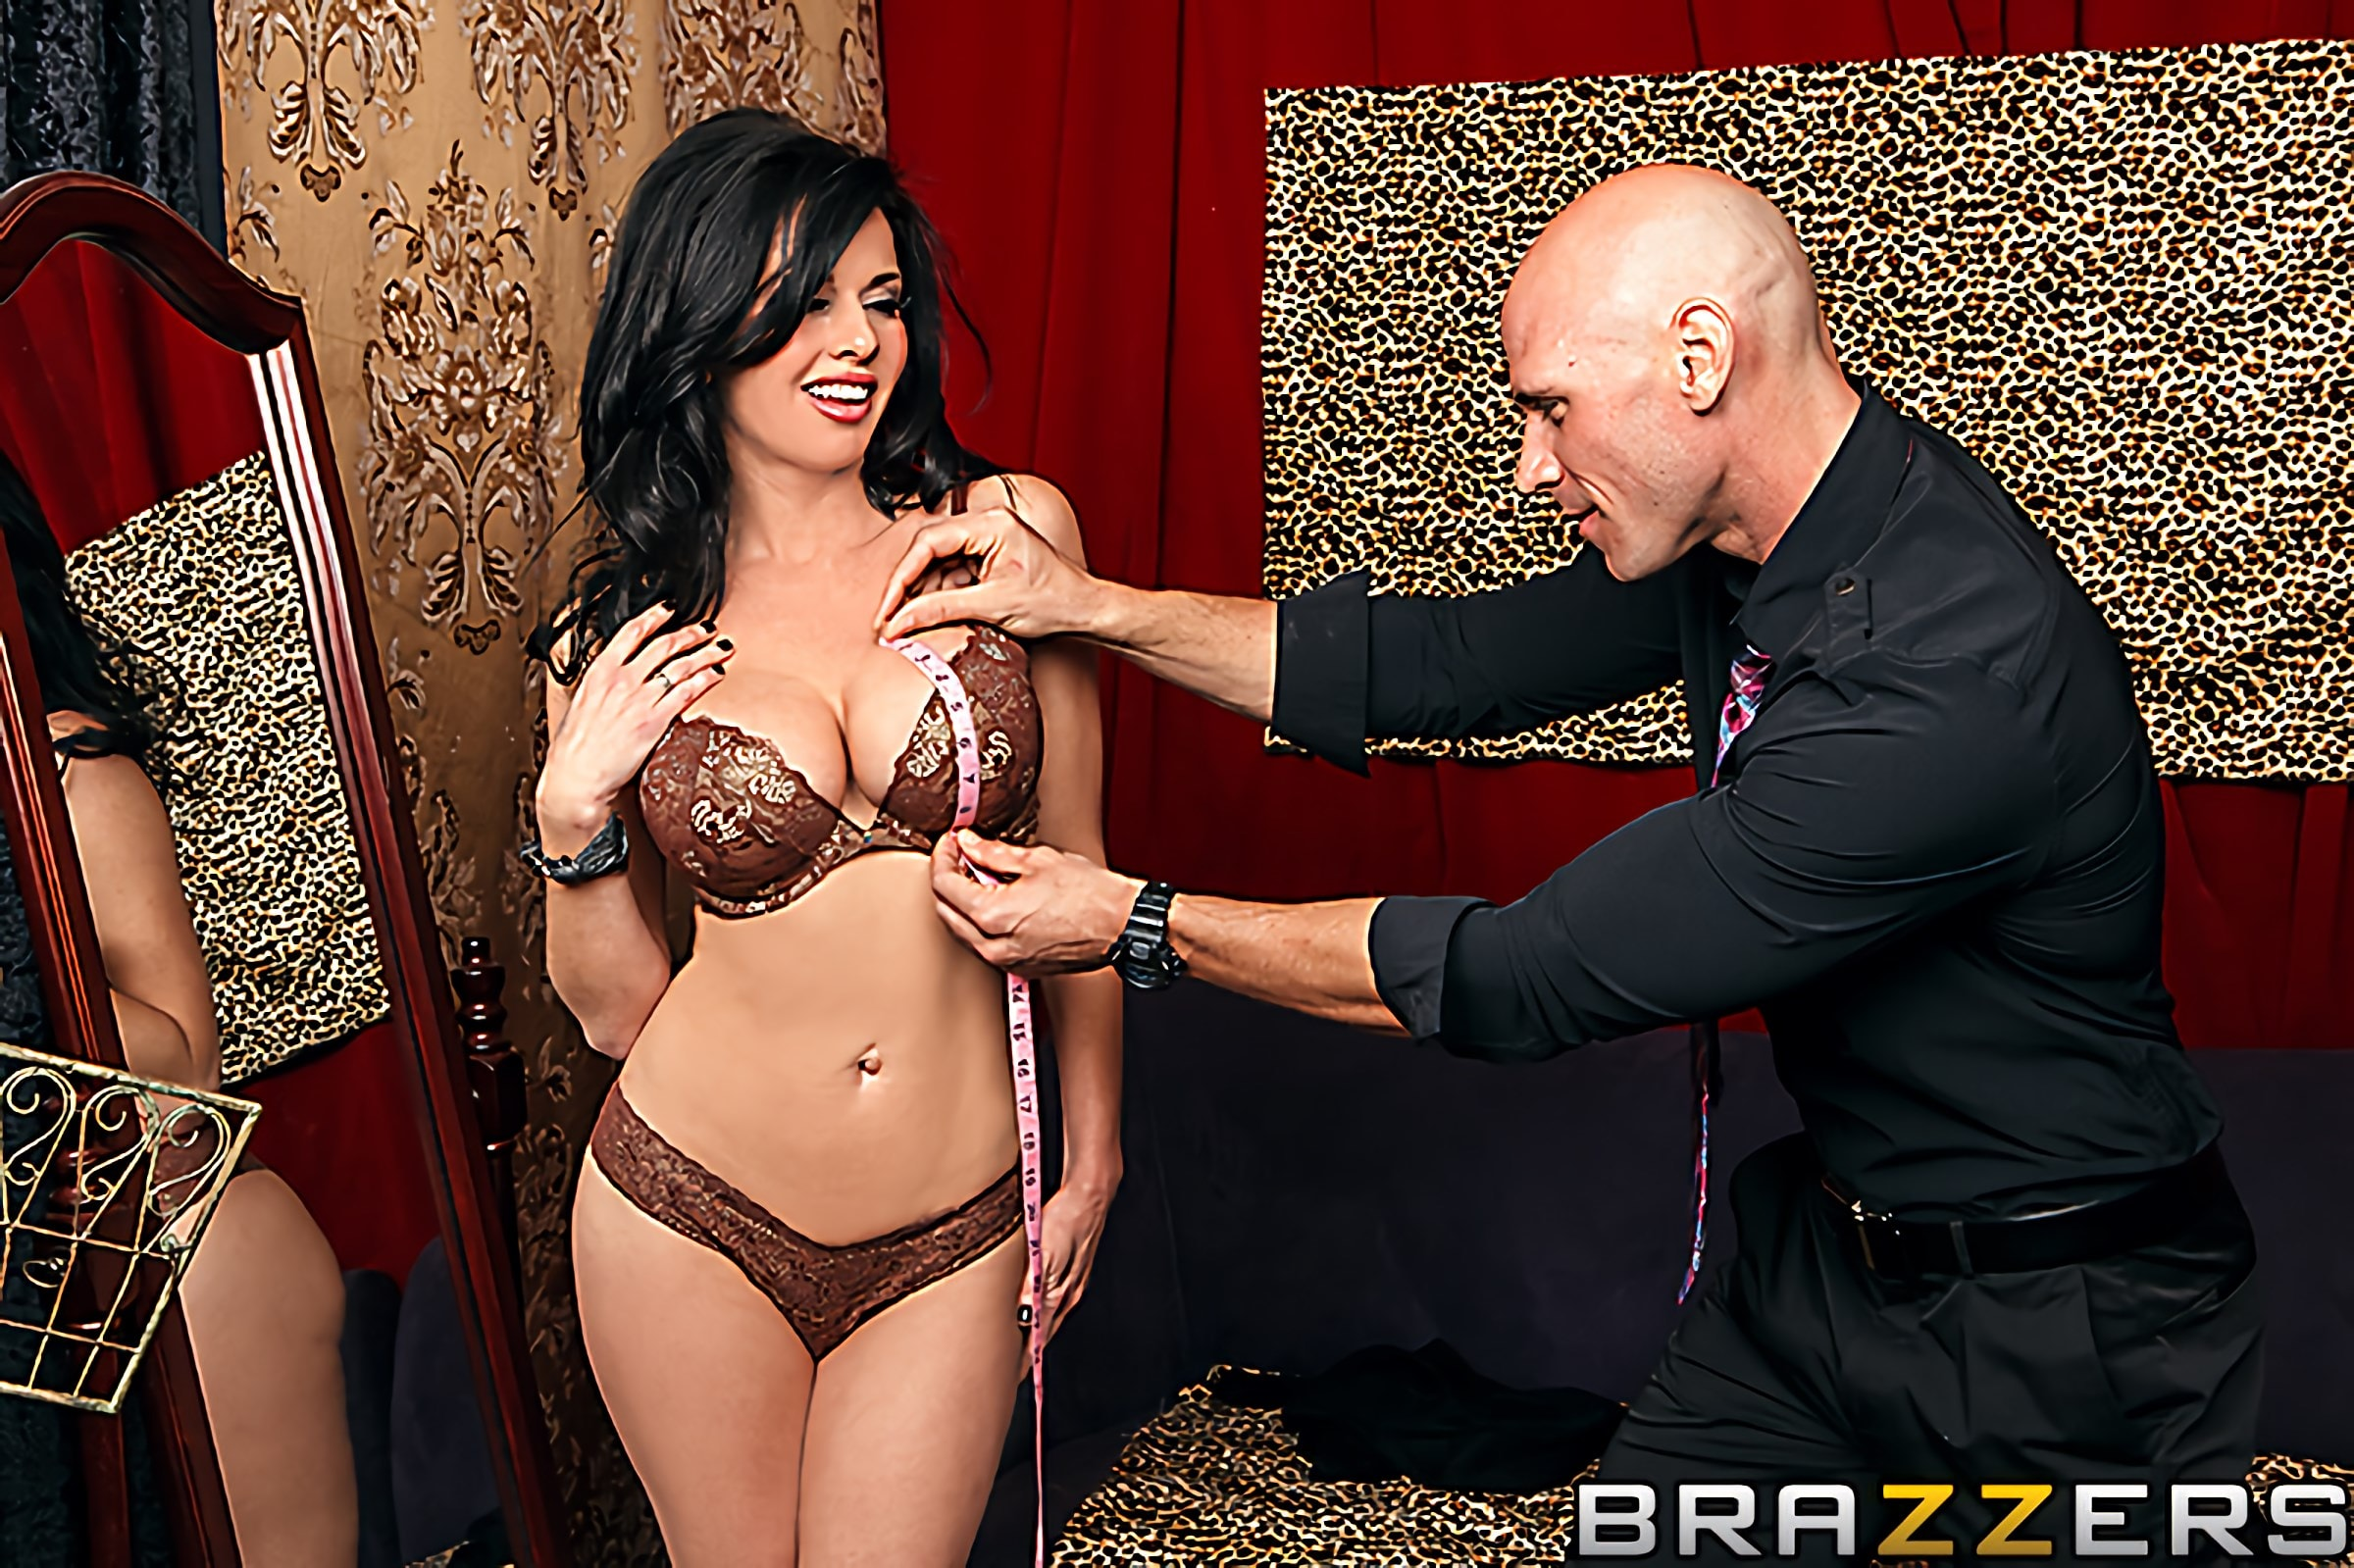 Brazzers 'The Right Fit' starring Veronica Avluv (Photo 2)